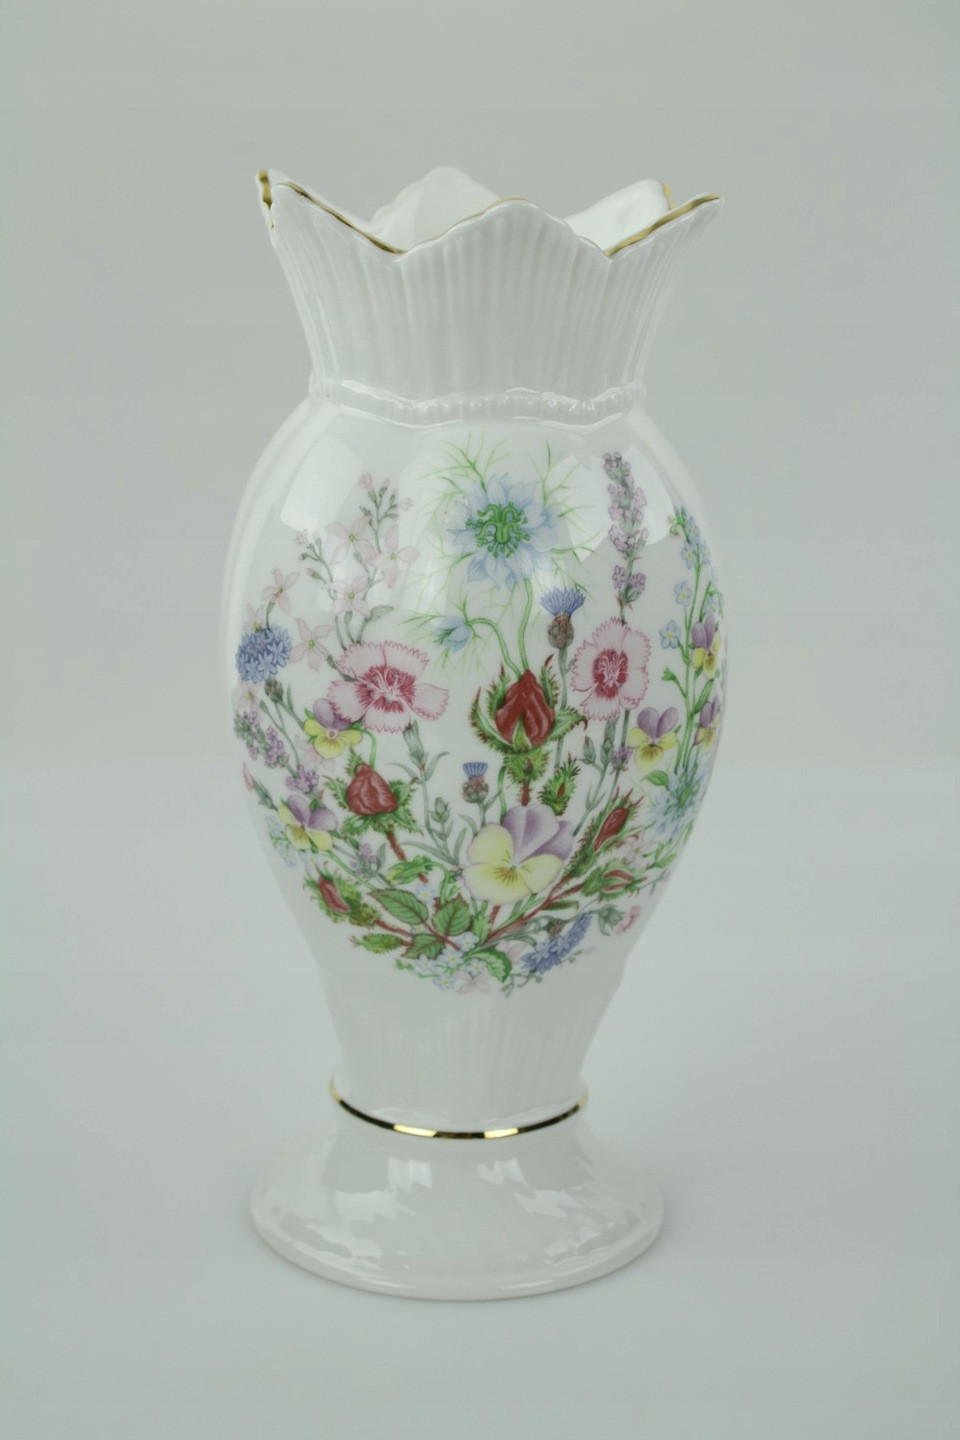 30 Recommended Aynsley Bone China Vase